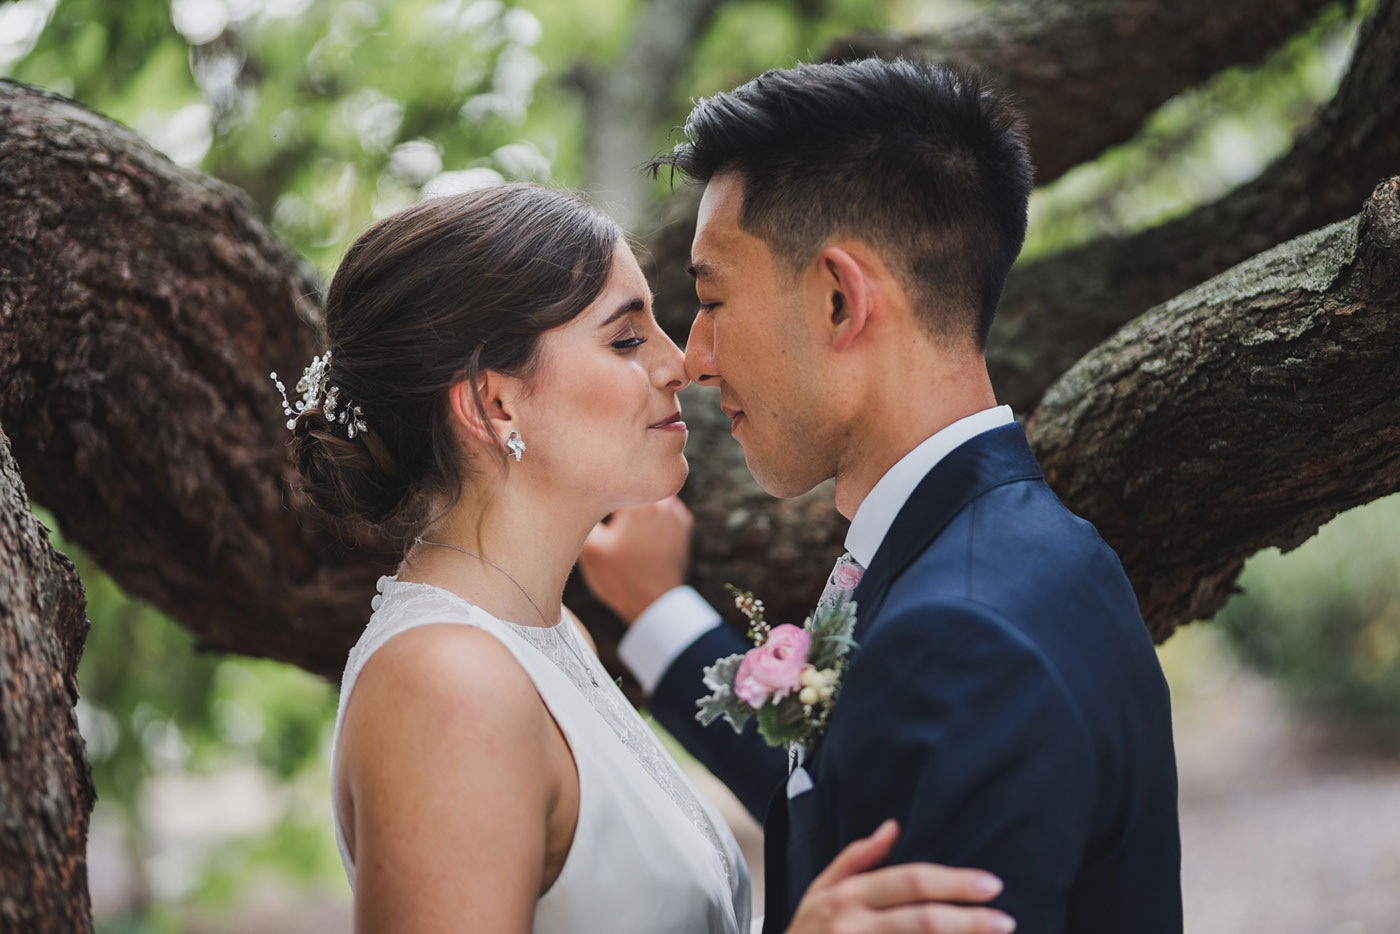 bride and groom from a wedding at Saint Thomas of Villanova by Weddings by Hanel